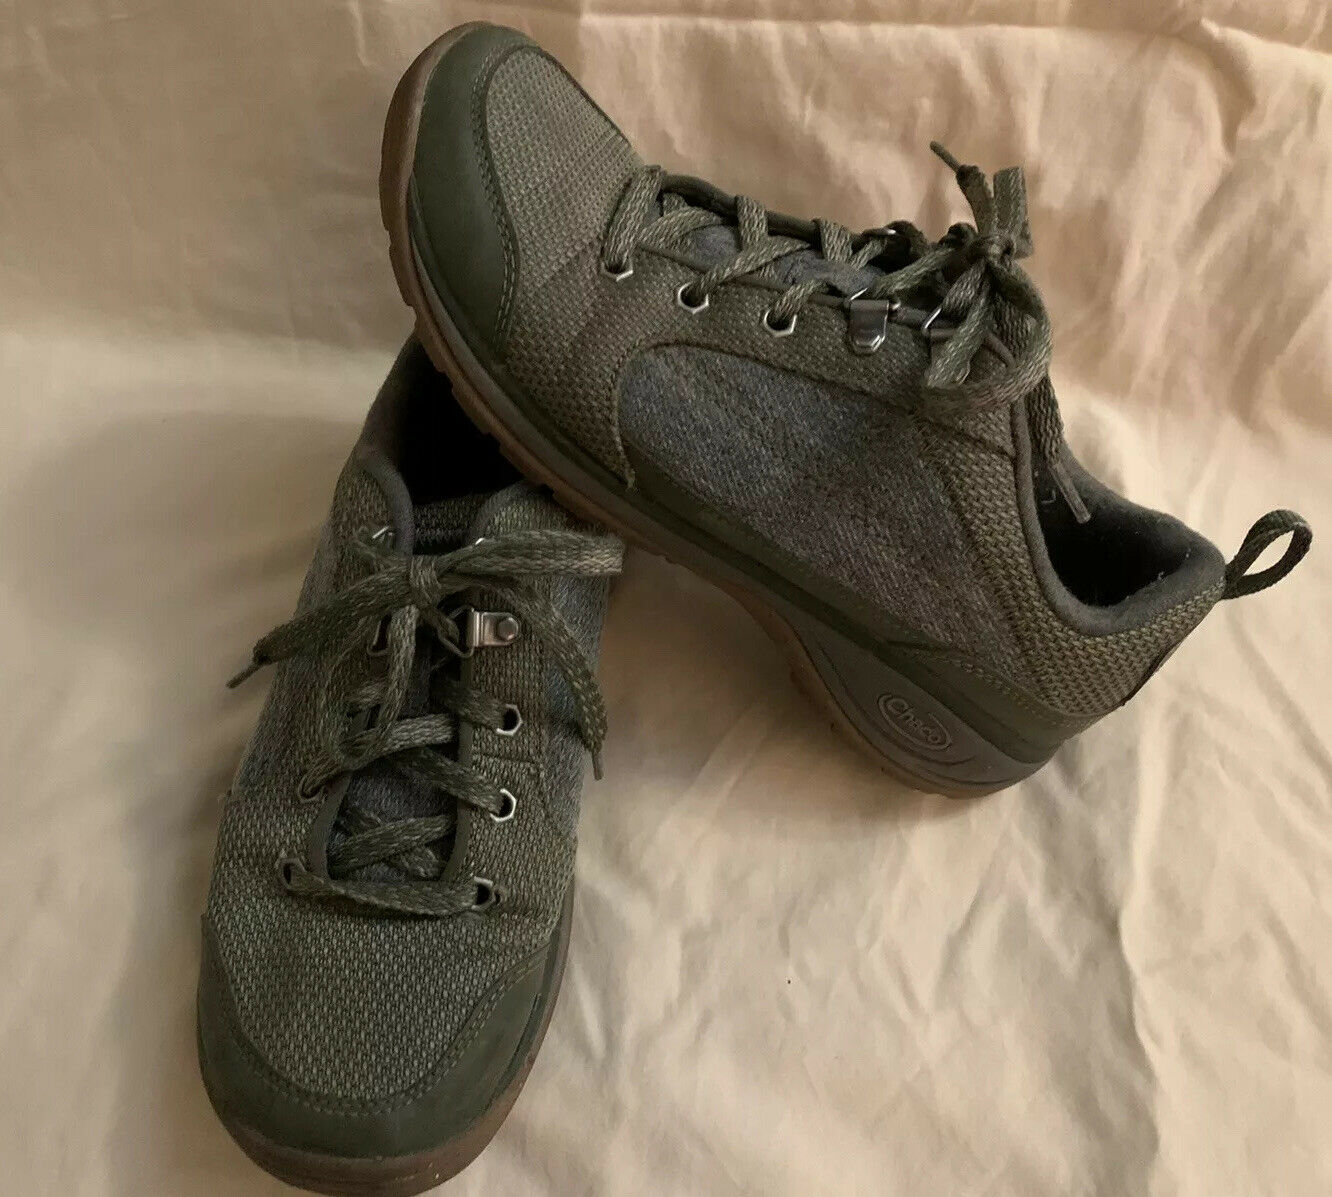 Women's Chaco Kanarra Green And Gray Lace Up Shoes Size 7.5